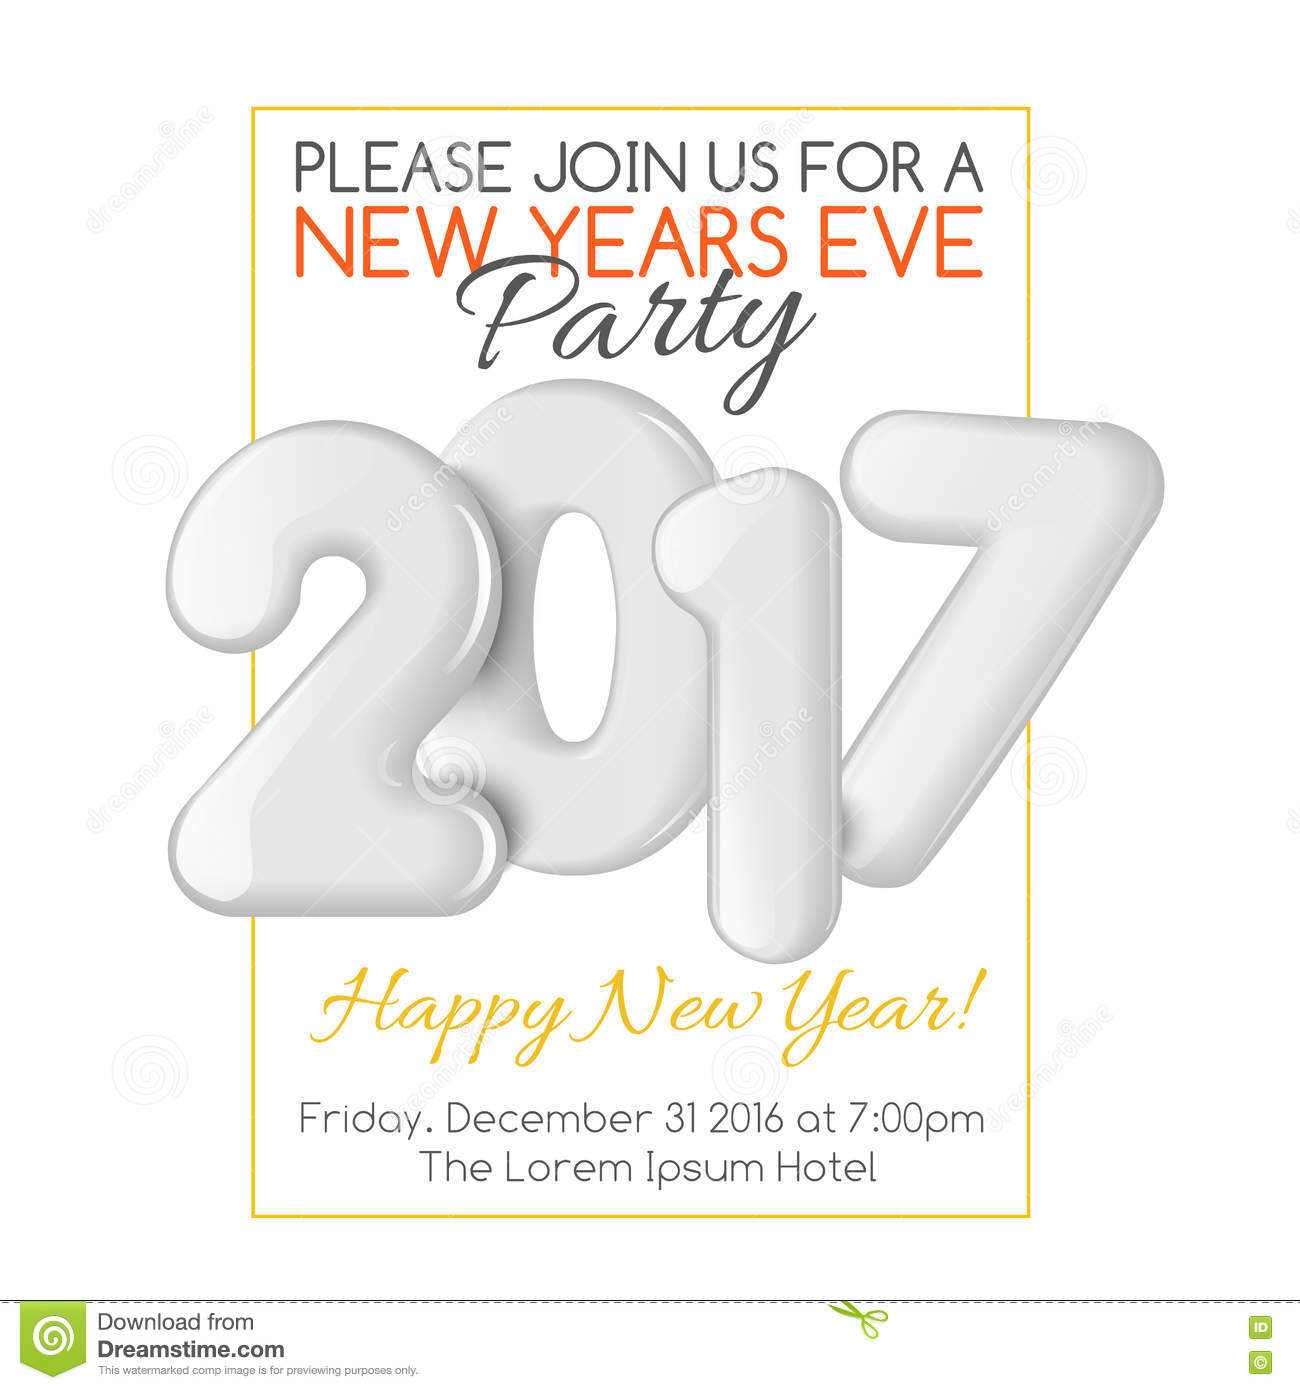 Merry Christmas And Happy New Year Party Invitation Template - New years eve party invitation templates free